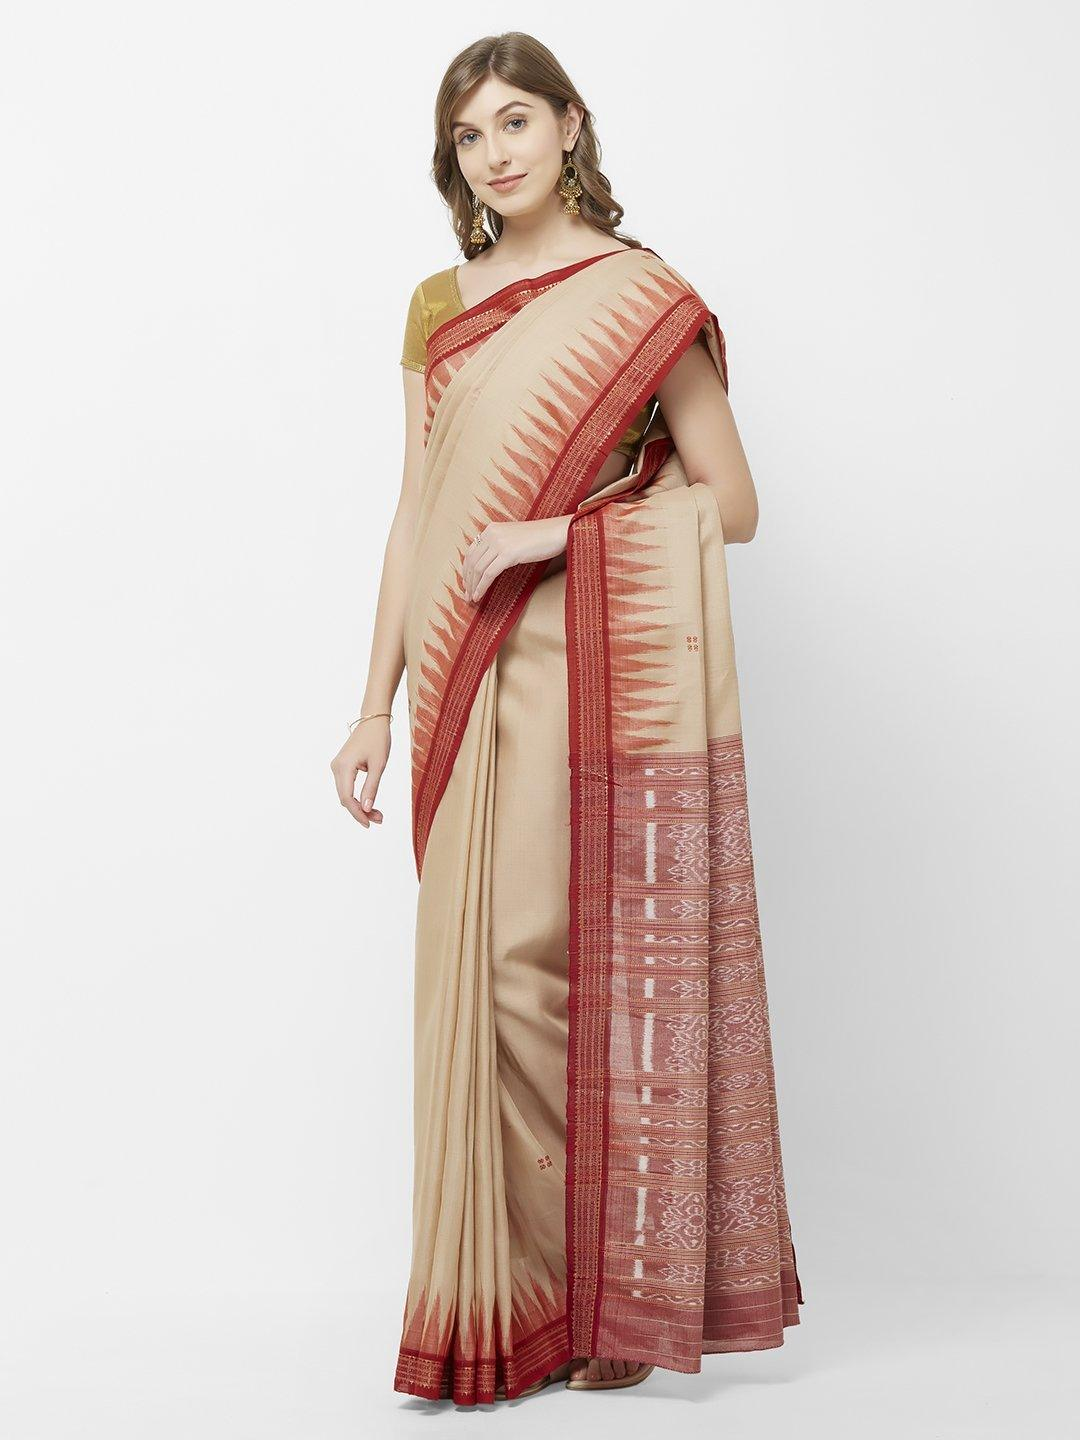 CraftsCollection.in -Beige and Red Cotton Sambalpuri Saree